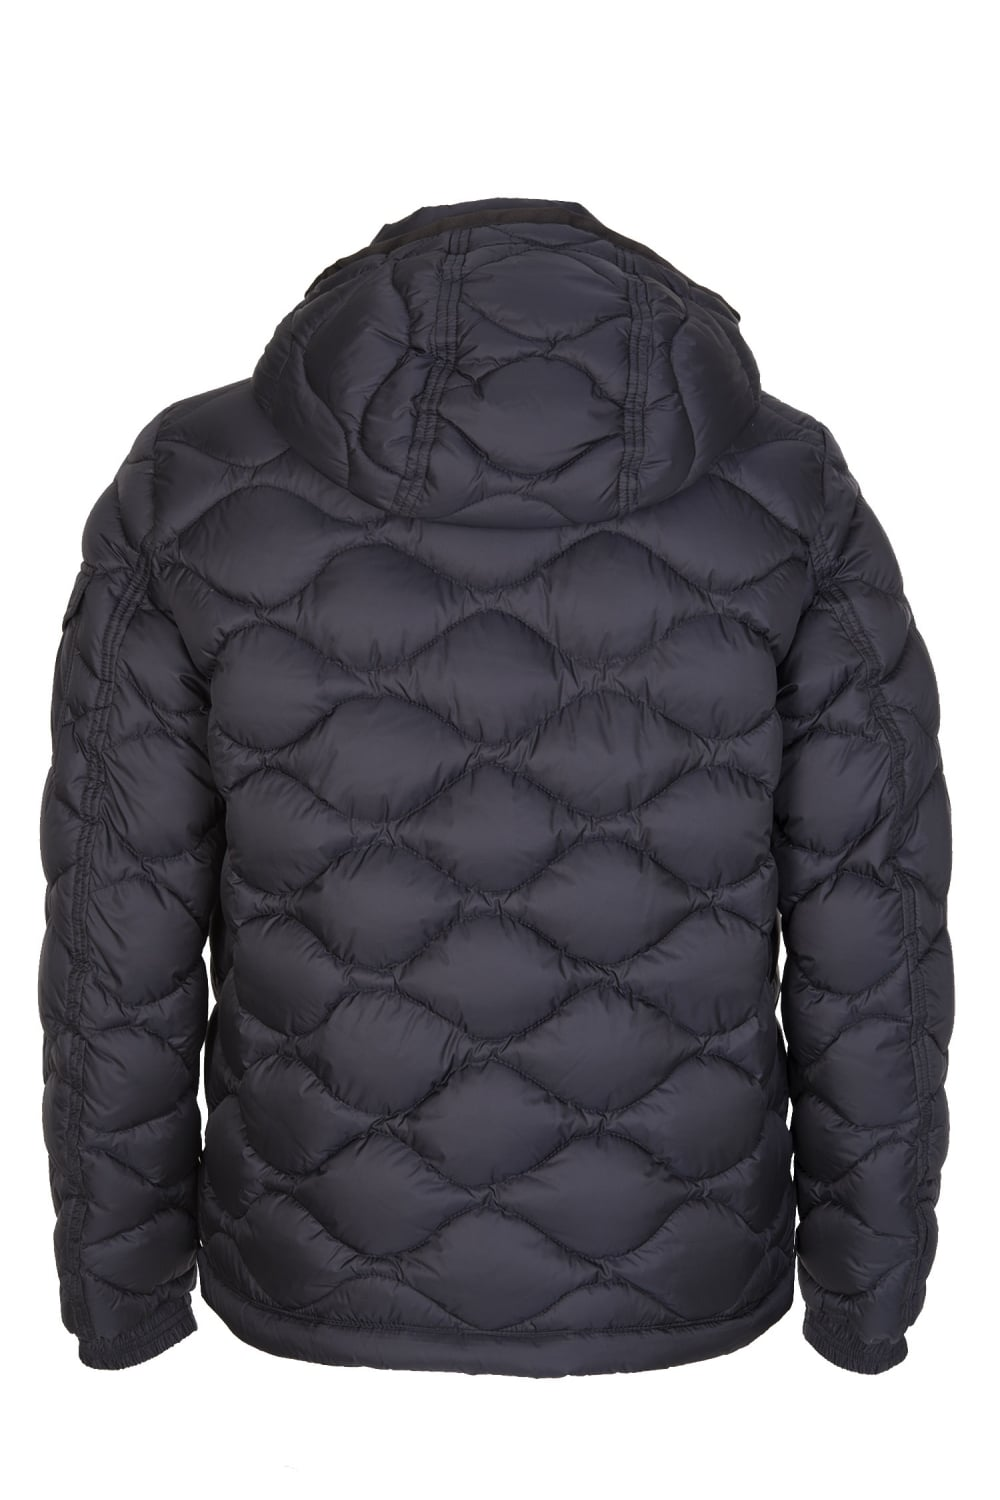 Discover the range of quilted jackets for men at ASOS. Shop our collection of padded and puffer jackets in formal and casual styles today.